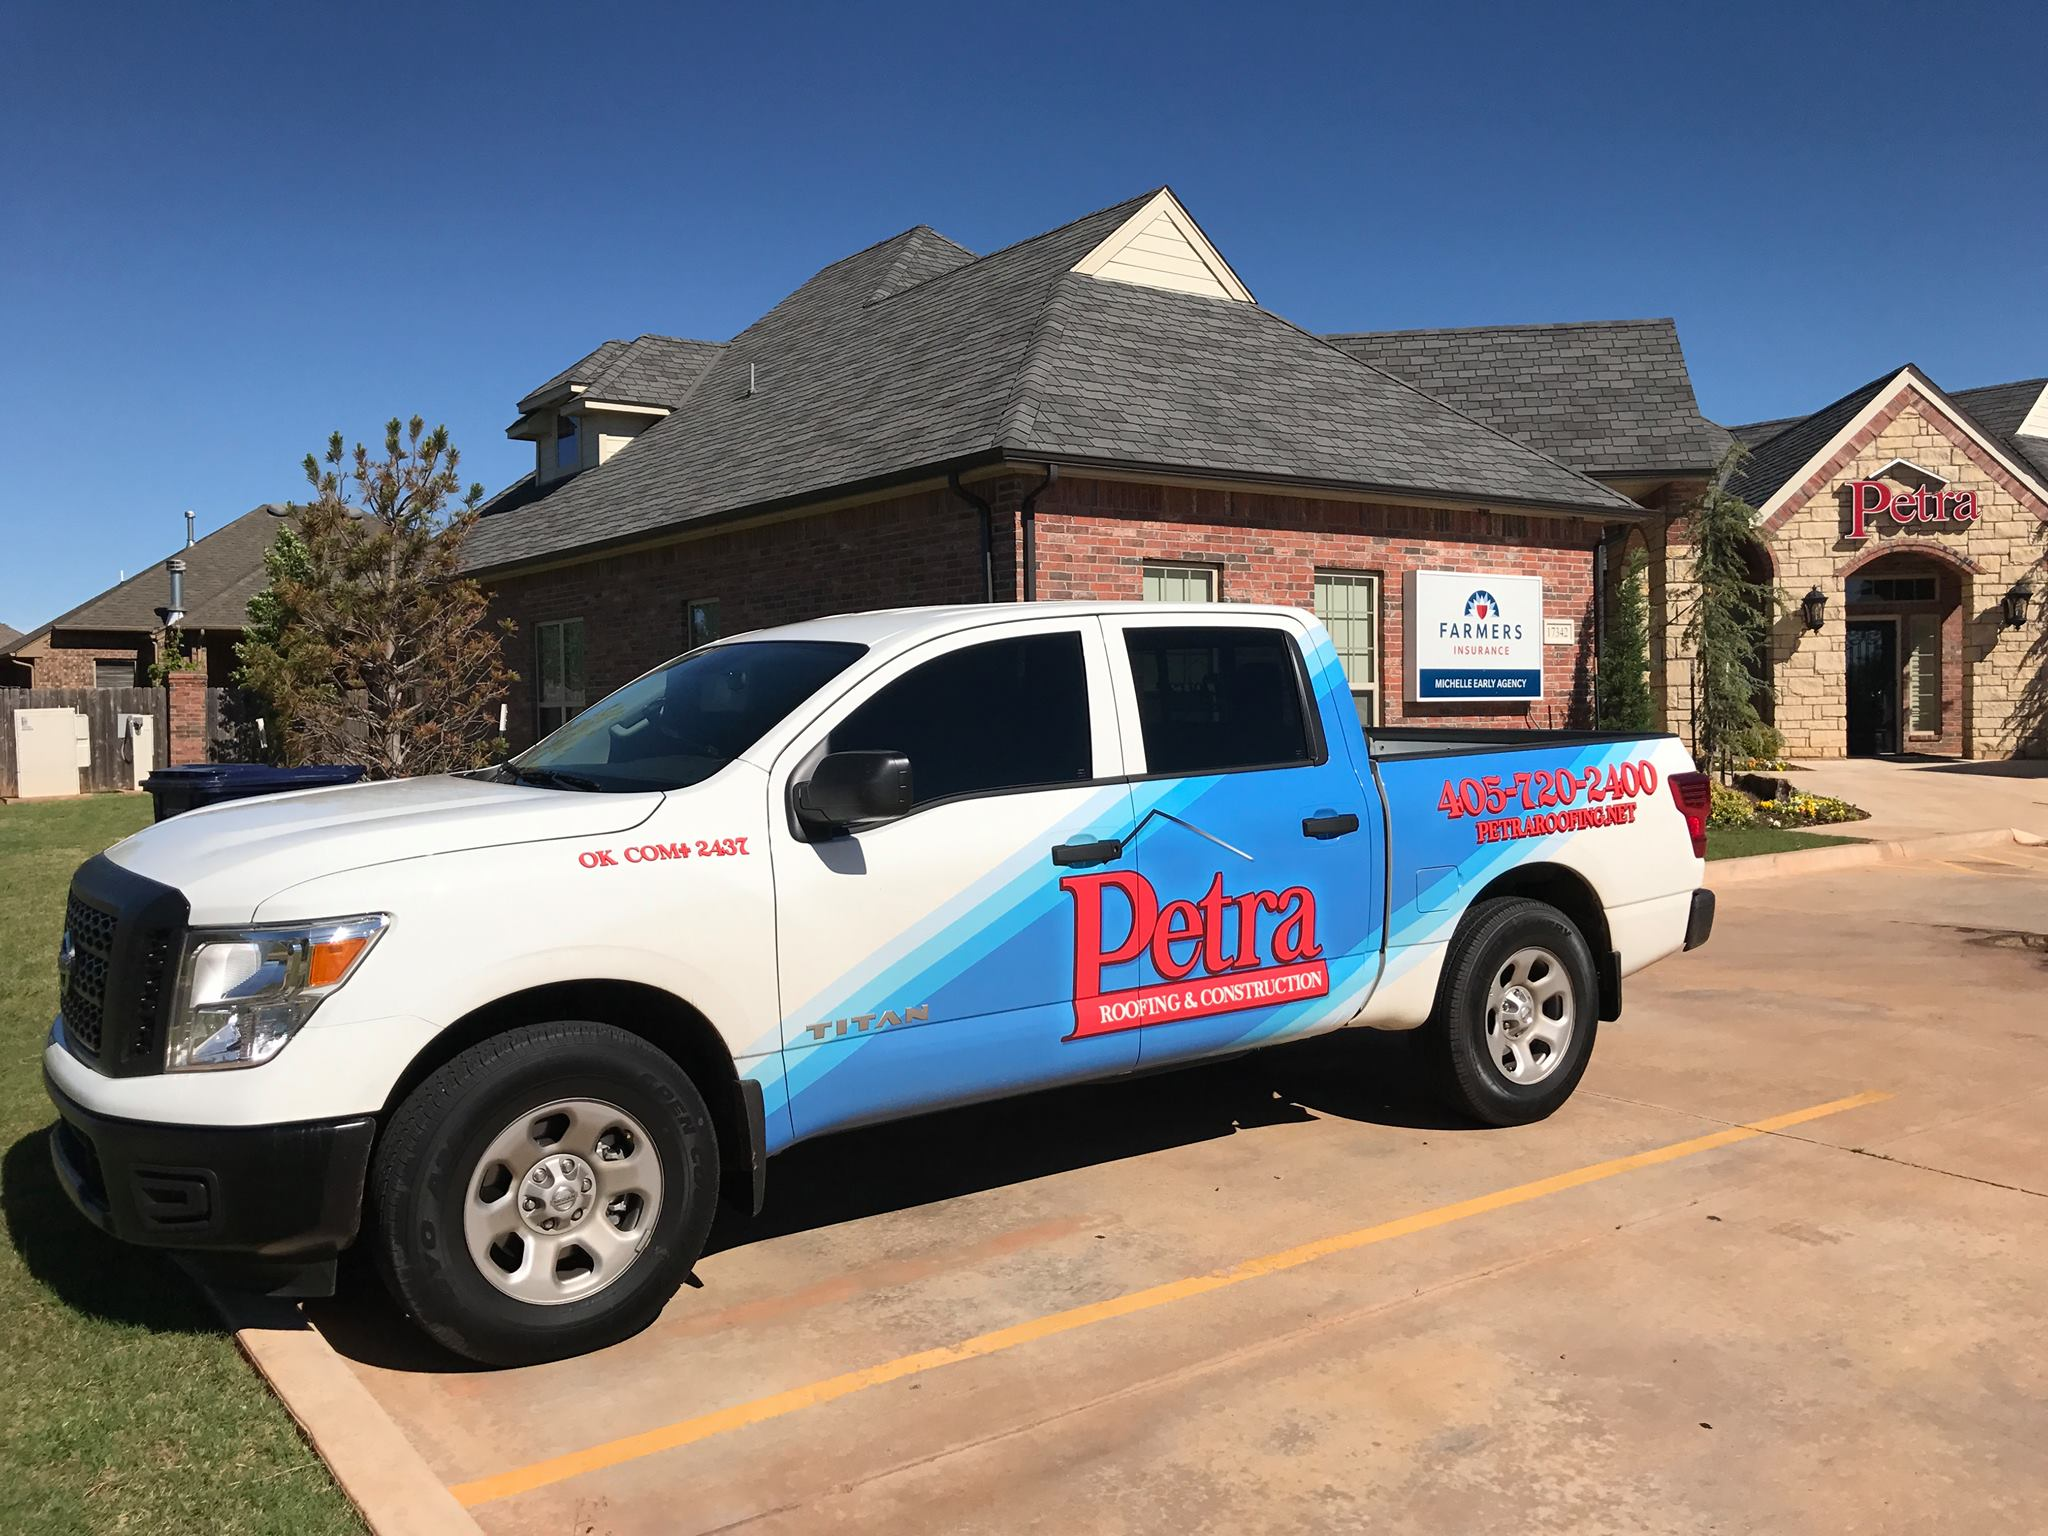 Commercial - Petra Roofing Company